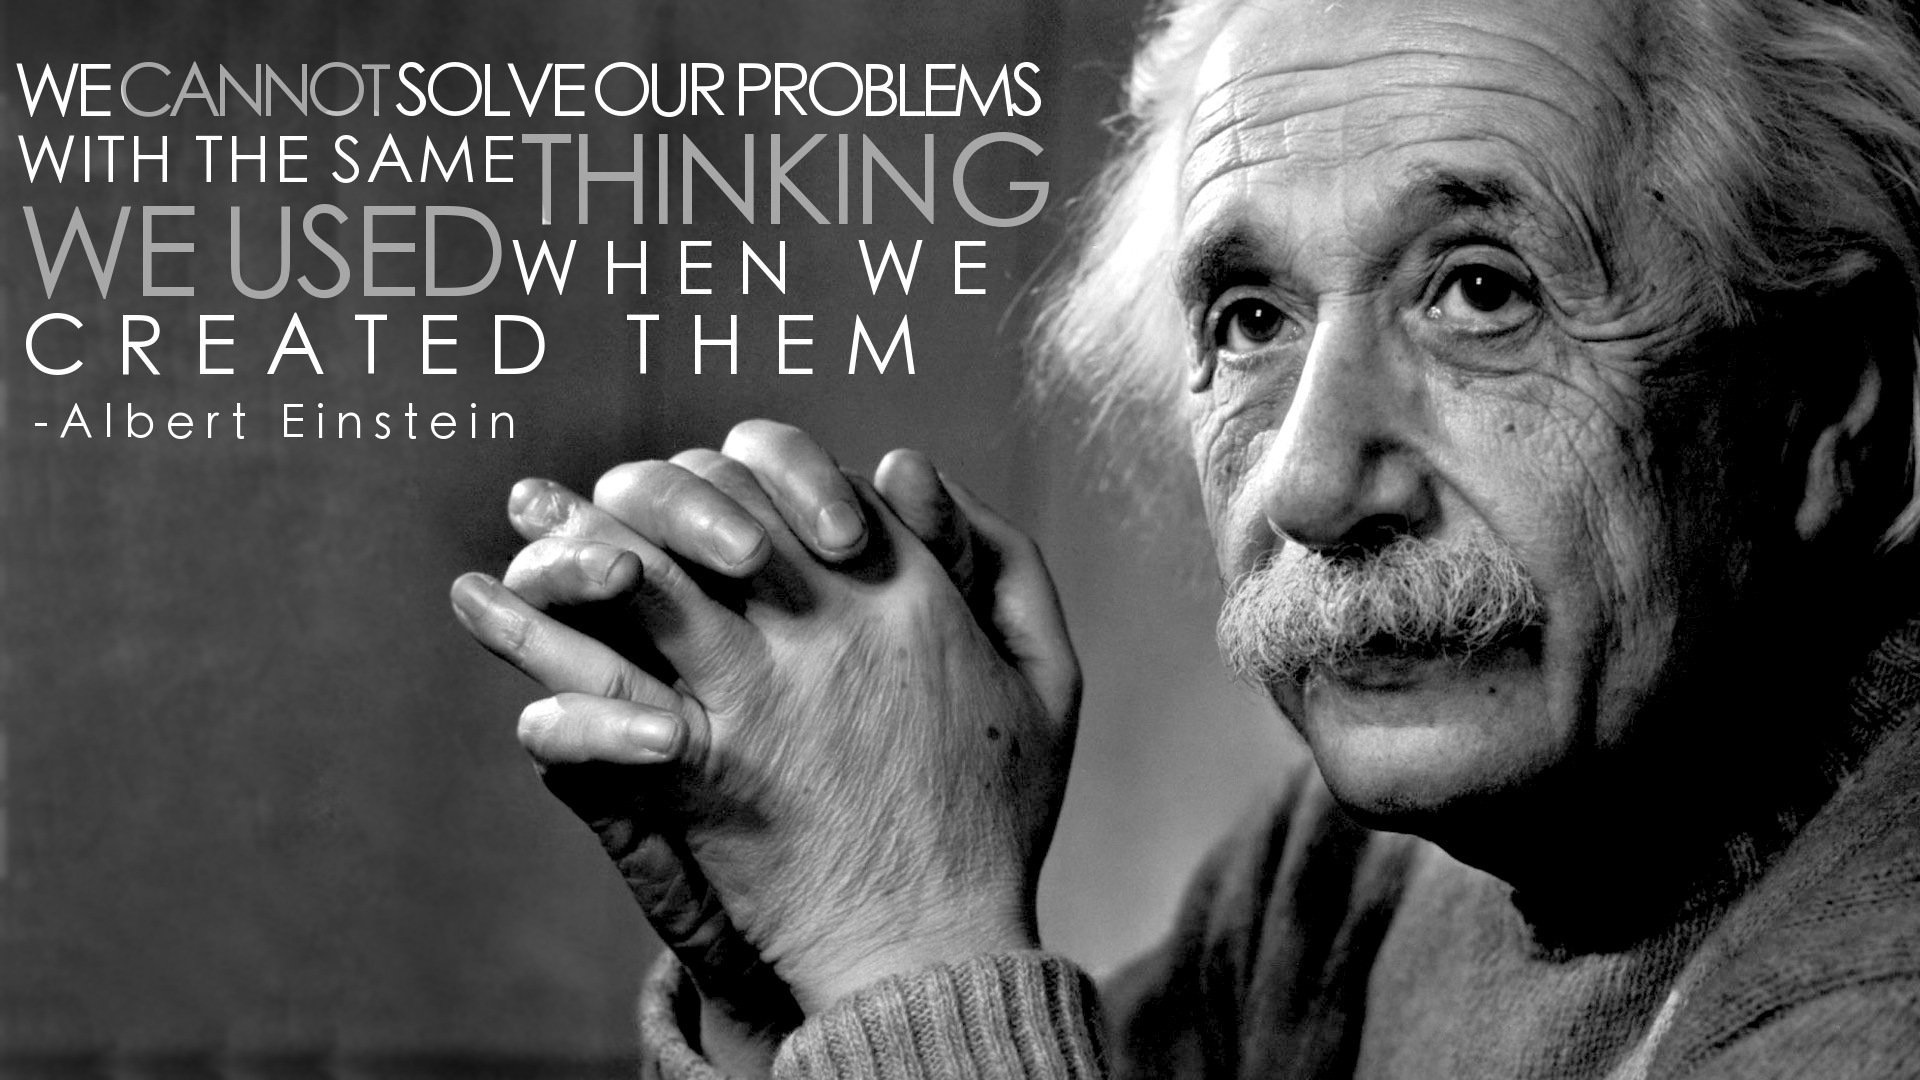 We cannot solve your problems with the same thinking, We used when we created them.